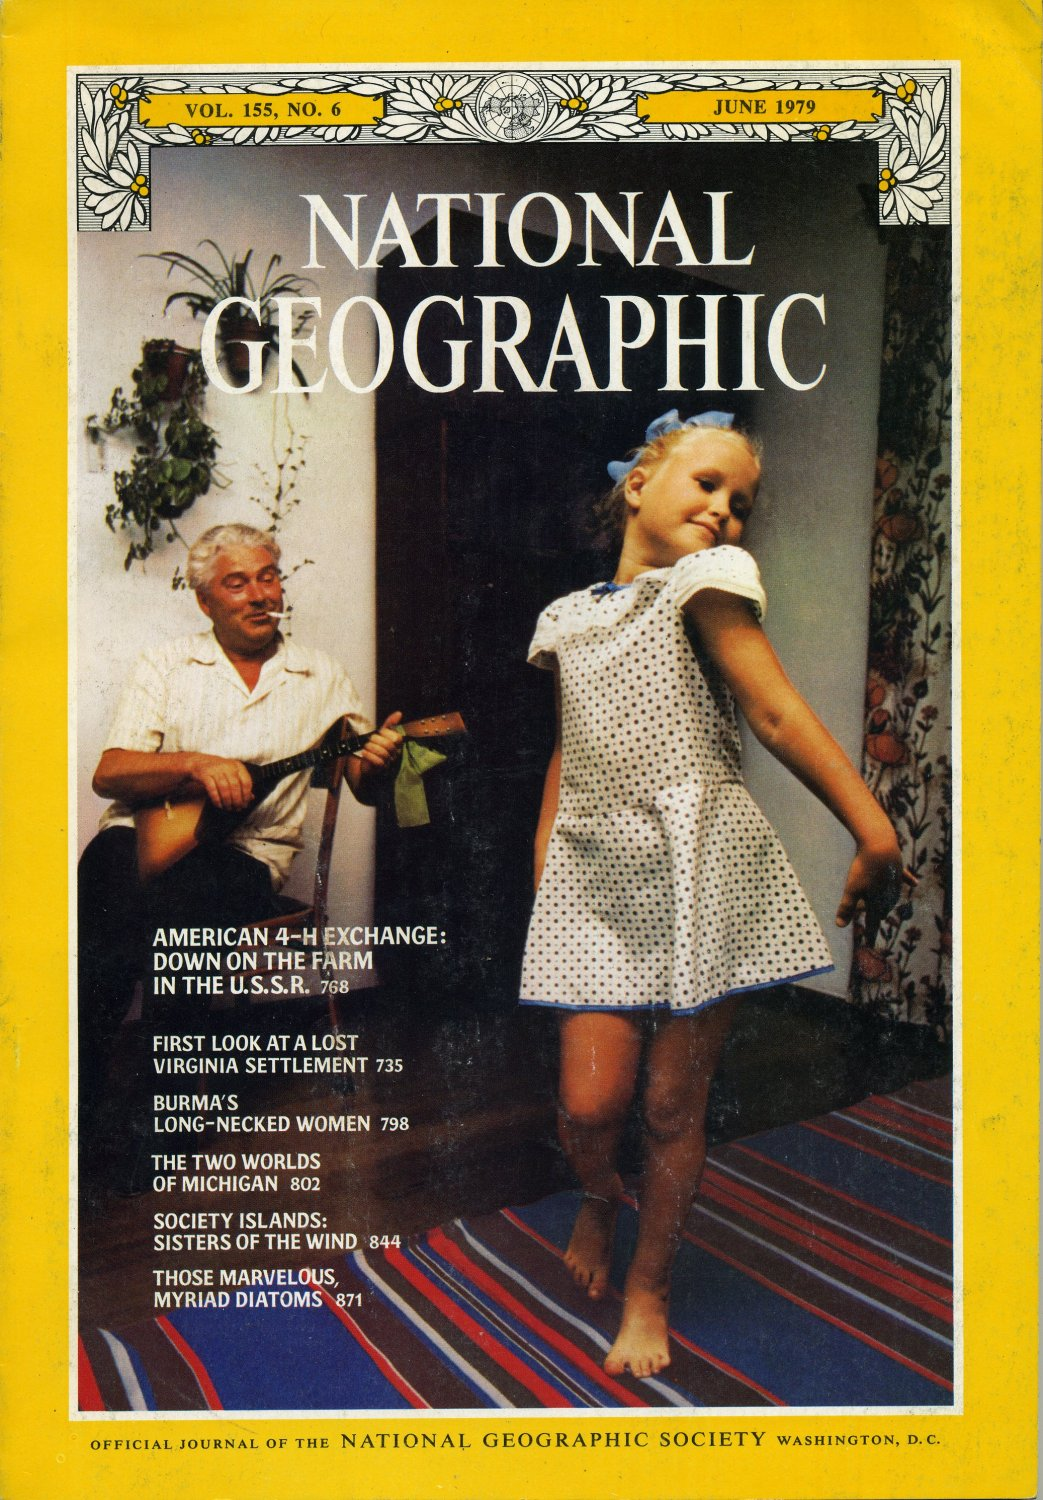 National Geographic June 1979-American 4-H Exchange:Down On The Farm In The U.S.S.R.